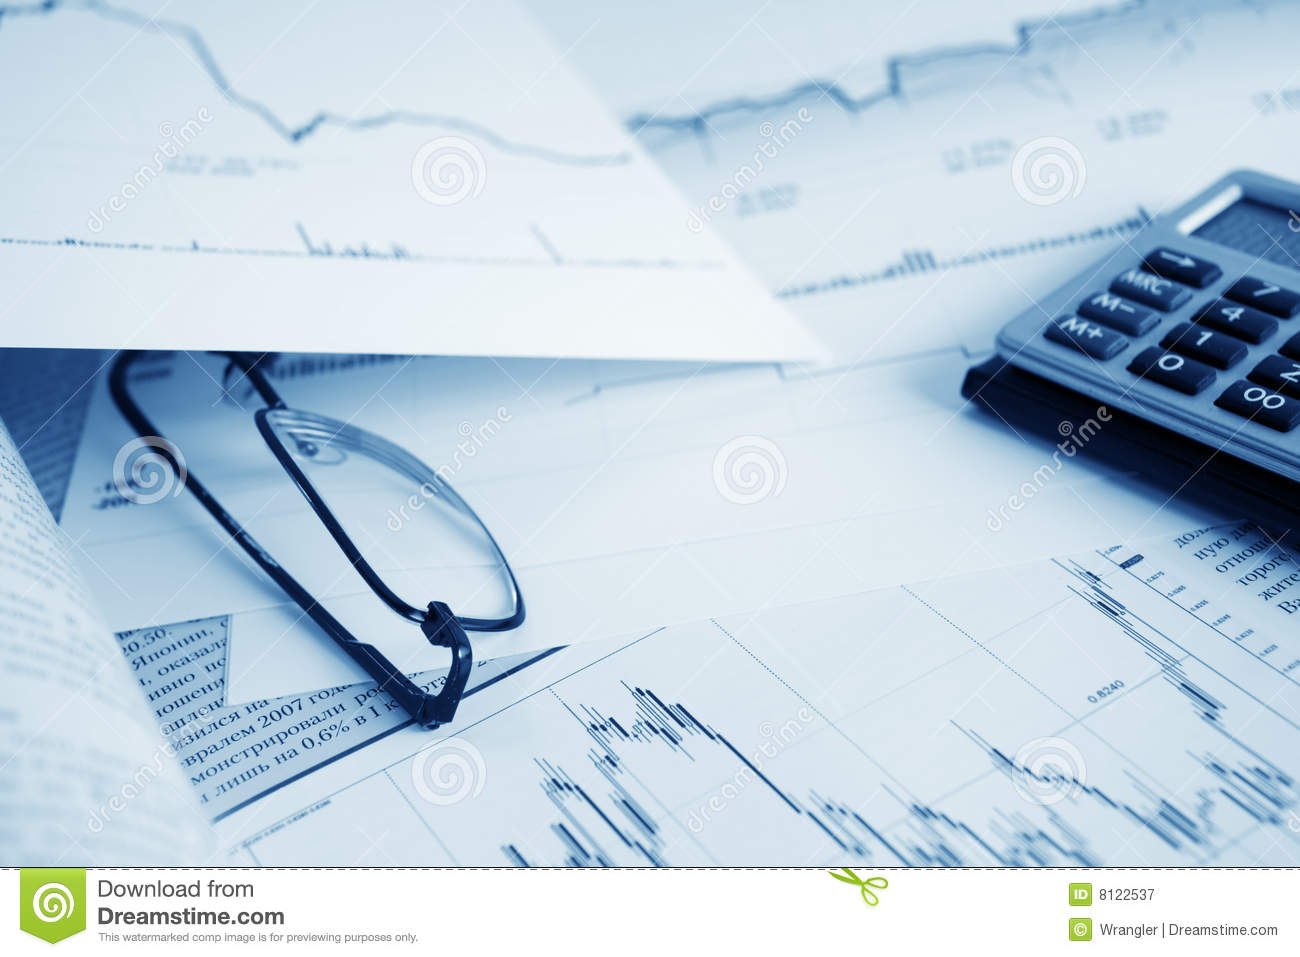 Mark-to-market accounting